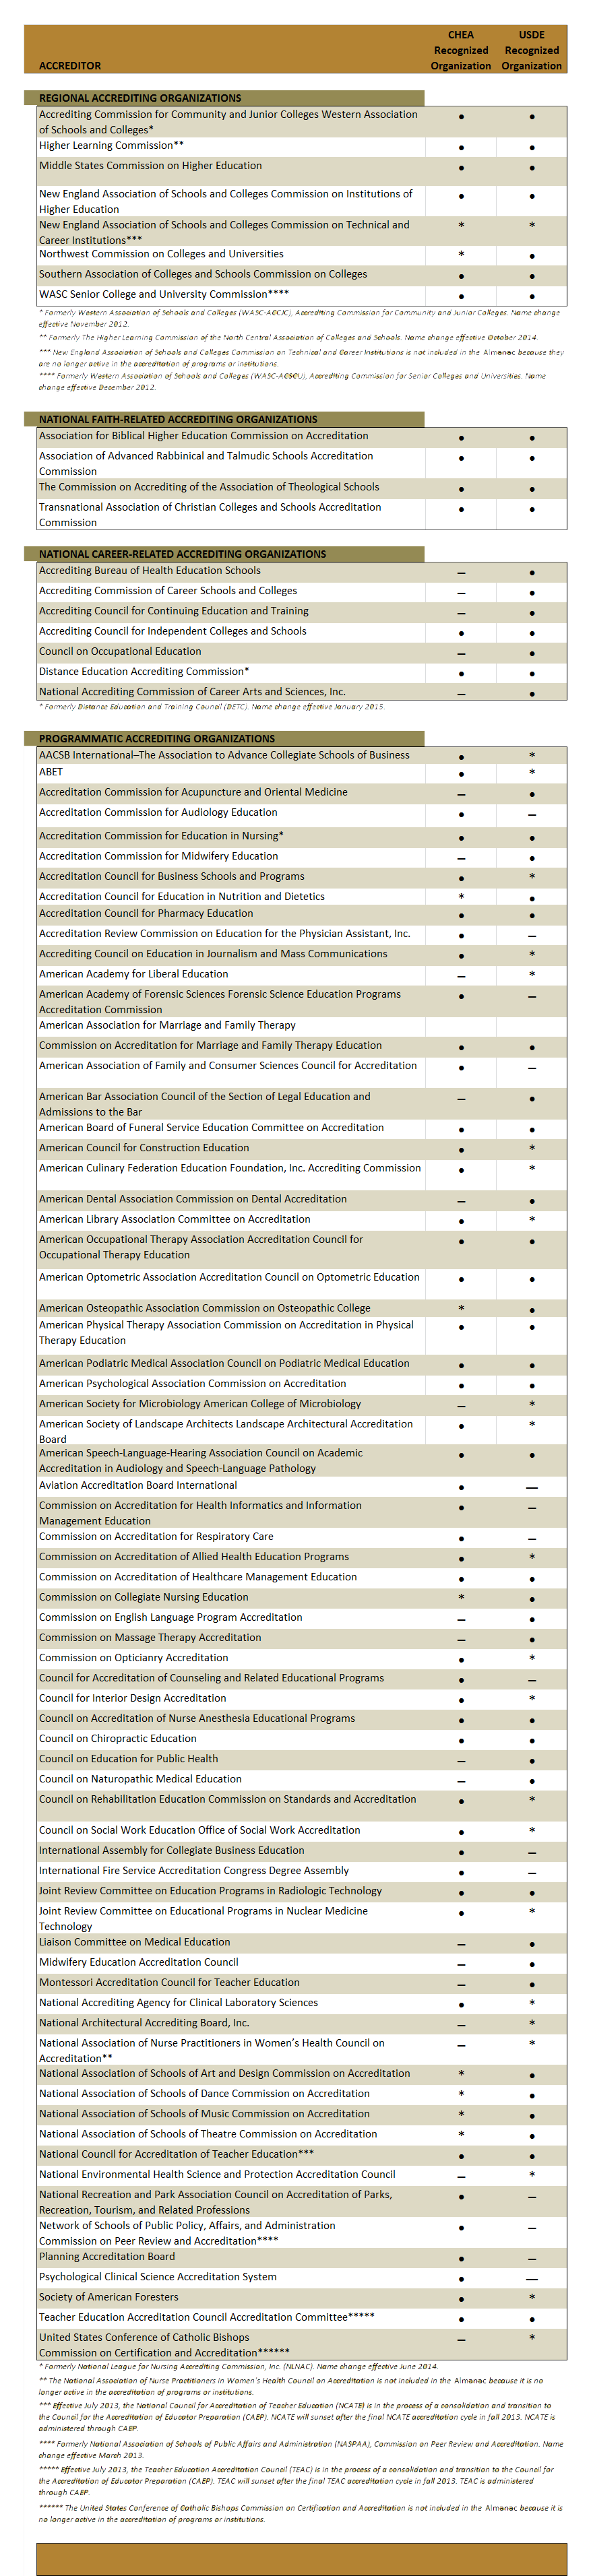 Recognized Accrediting Organizations Chart